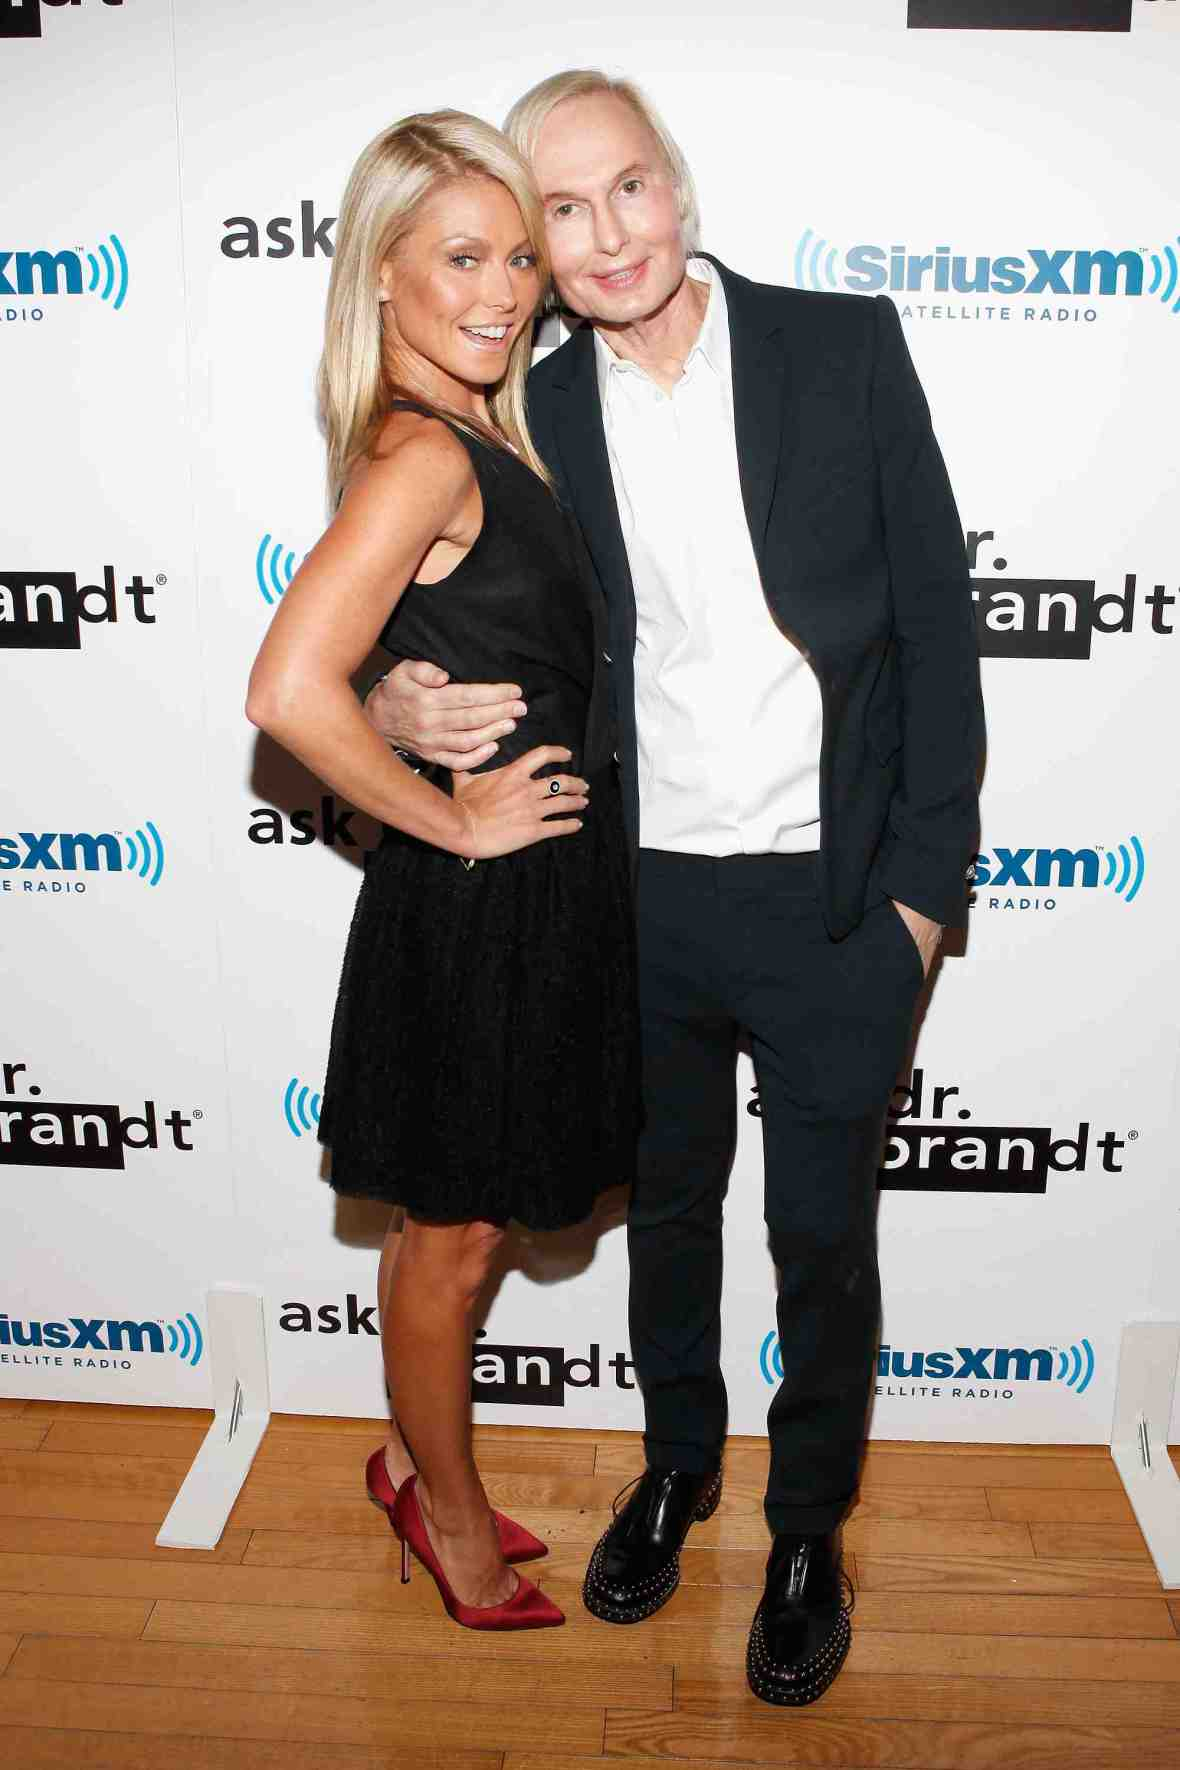 frederic brandt and kelly ripa